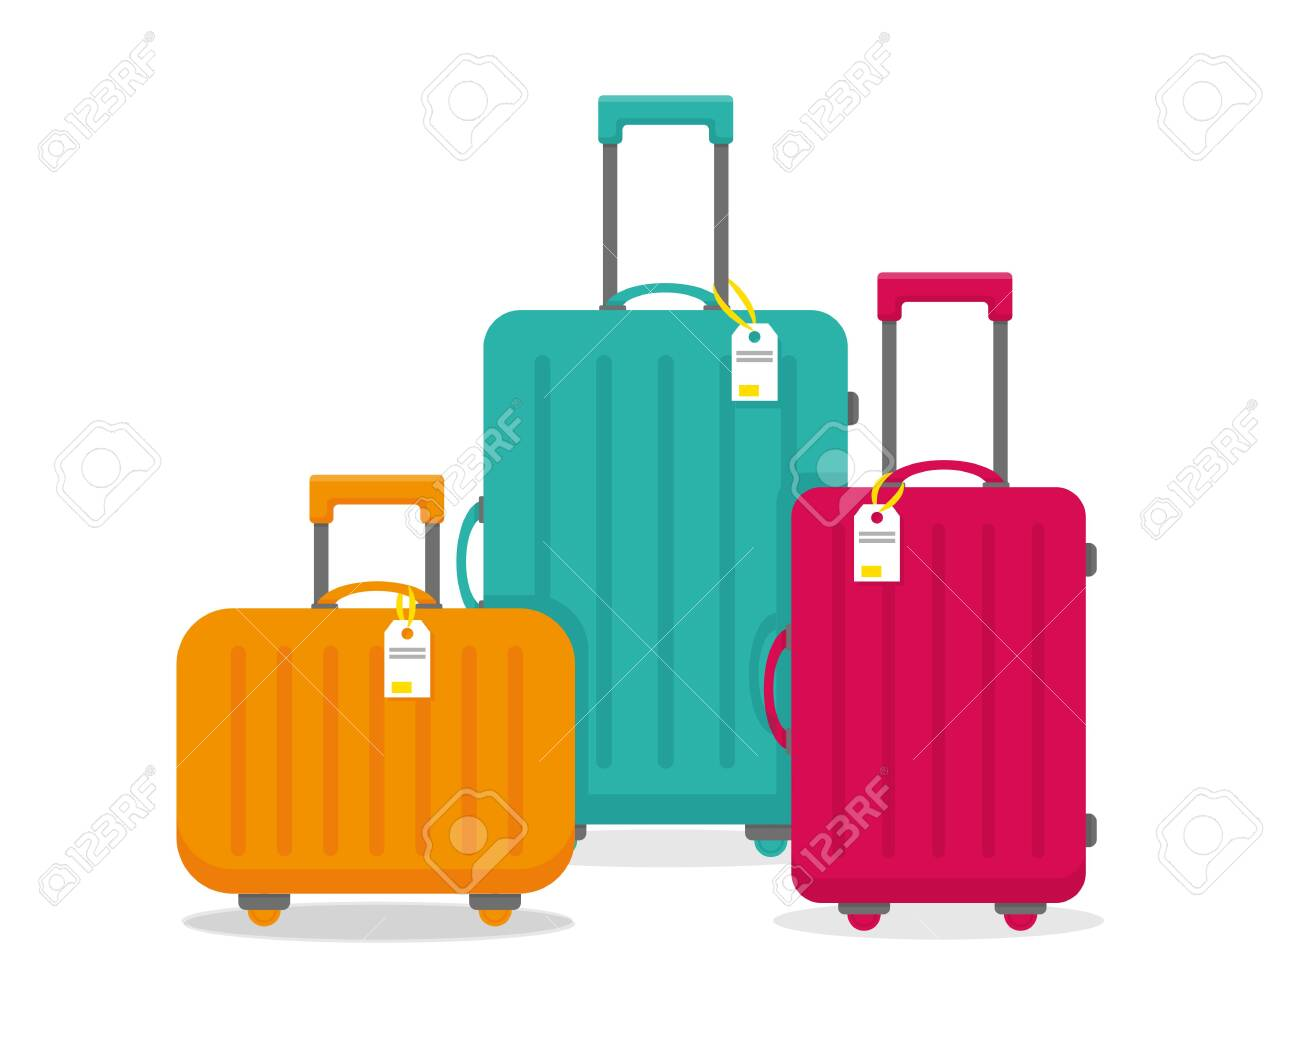 Bright travel suitcases isolated on the white background. Vector illustration. - 133276022